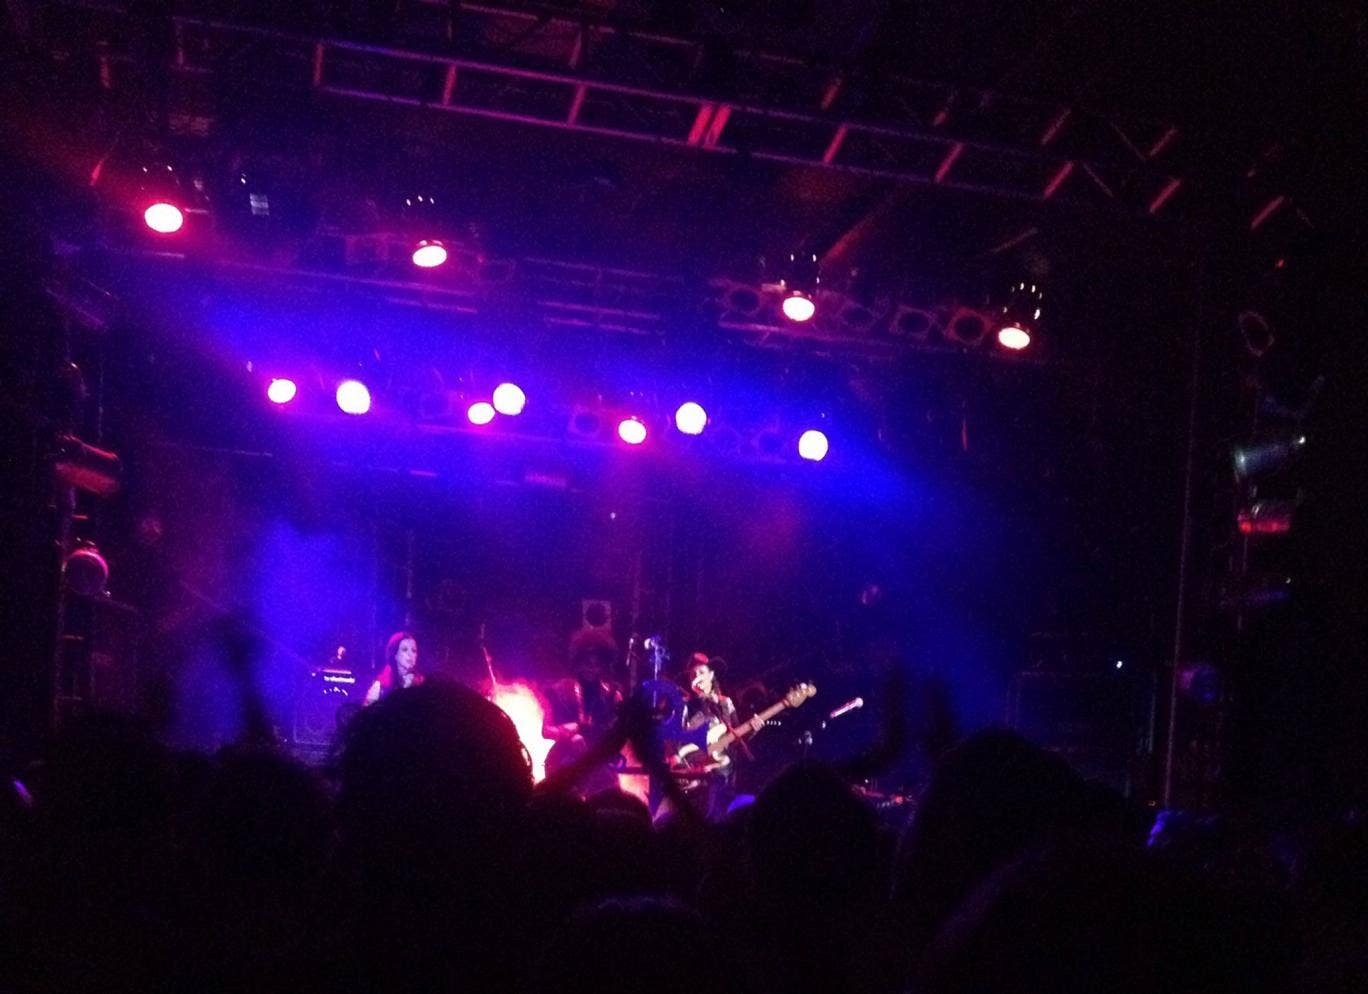 American singer Prince on stage at the Electric Ballroom in Camden, north London for a secret gig